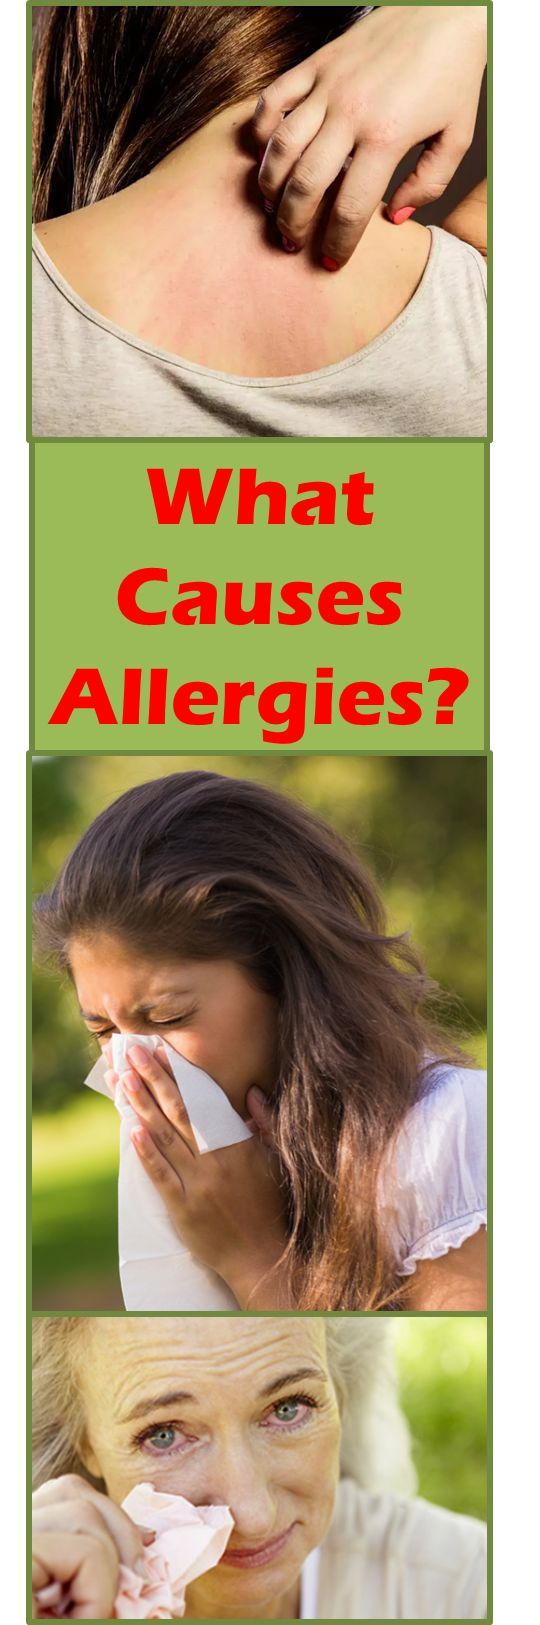 Almost 40 percent of the human population will suffer from allergies at some point in their lives. Itchy eyes, stuffy nose, coughing and sneezing are among the most common allergy symptoms and they can make any individual feel tired and weak. Many people often wonder if they can avoid allergies by doing things differently in their day-to-day routines. The answer is yes. However, before you change your schedule to avoid...